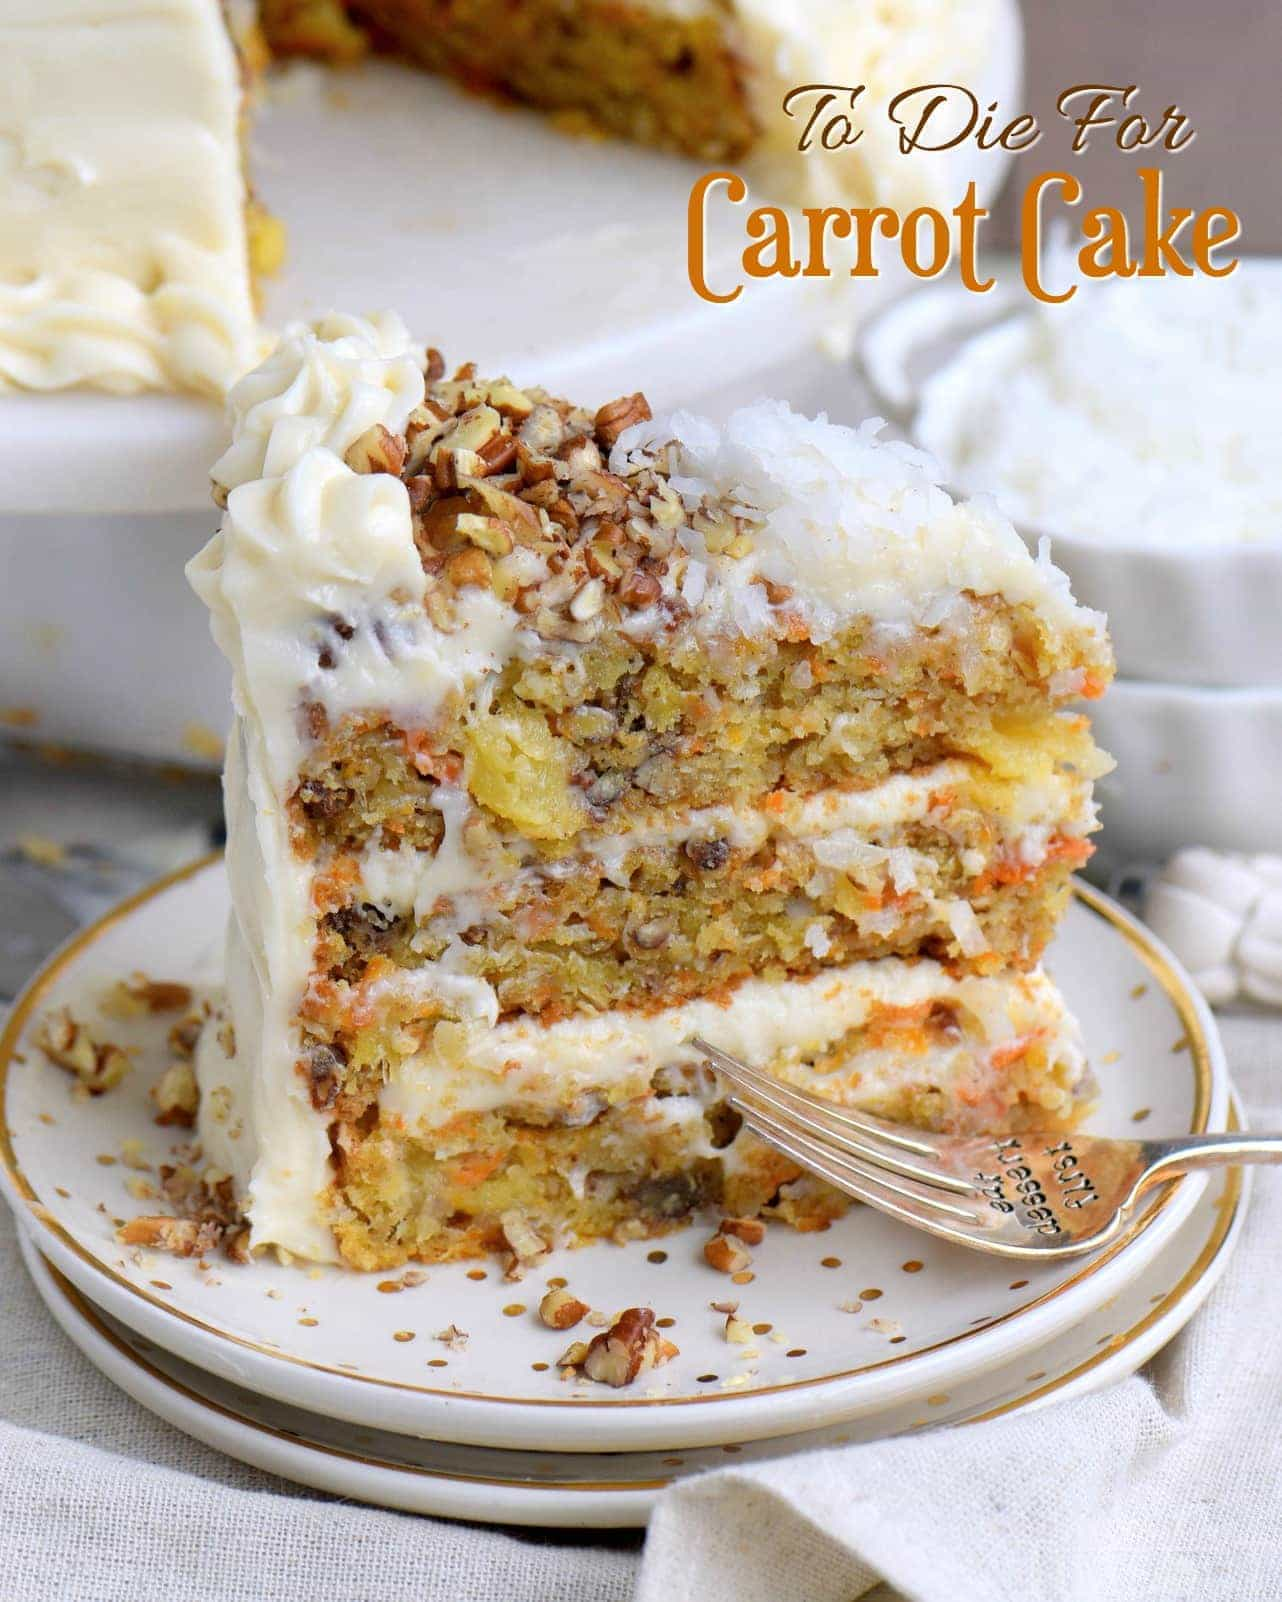 Best Icing For Carrot Cake Without Cream Cheese